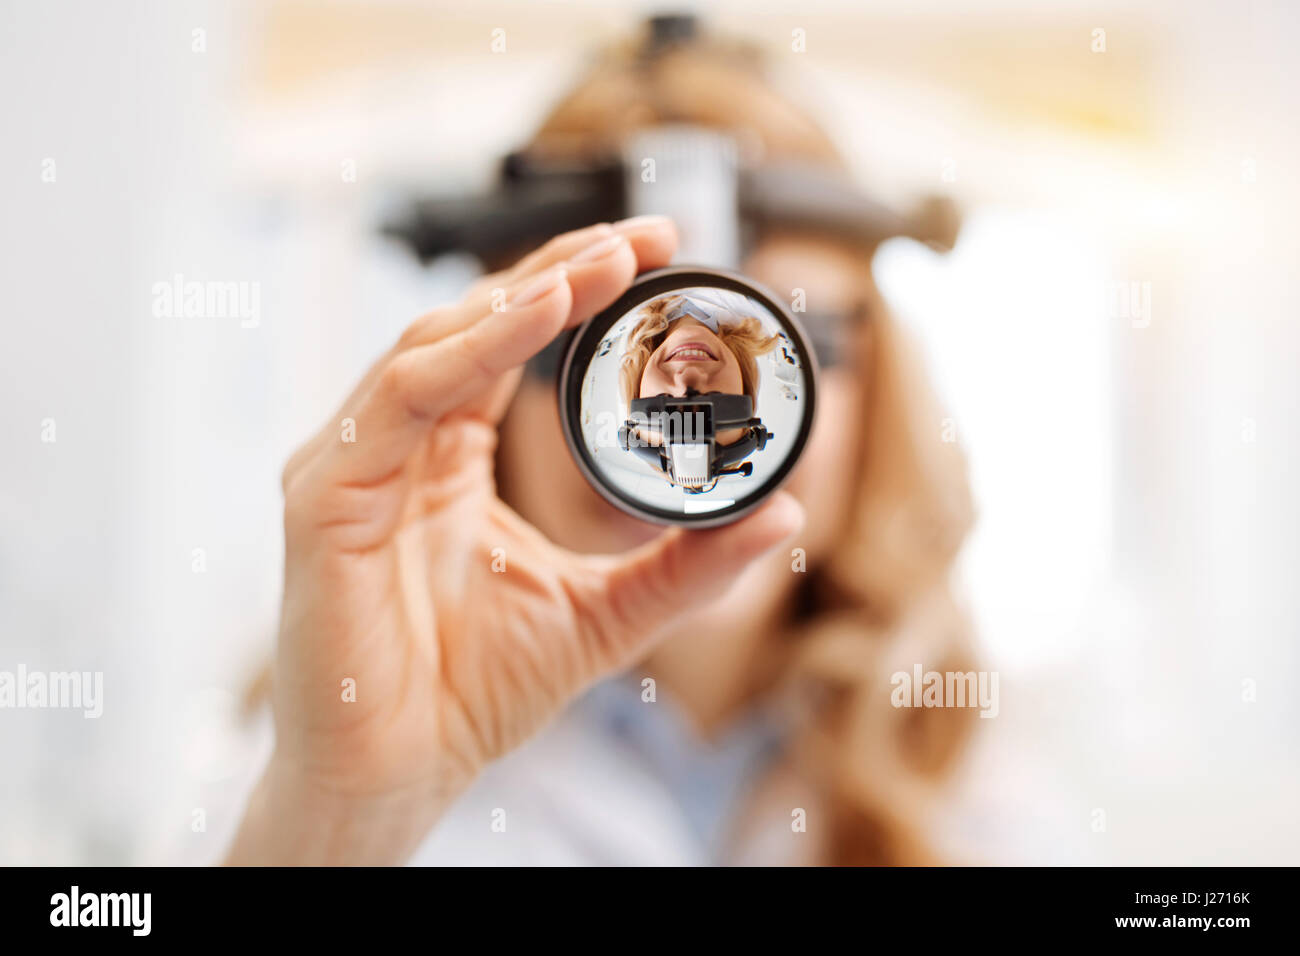 Focused scrupulous ophthalmologist doing a professional checkup - Stock Image